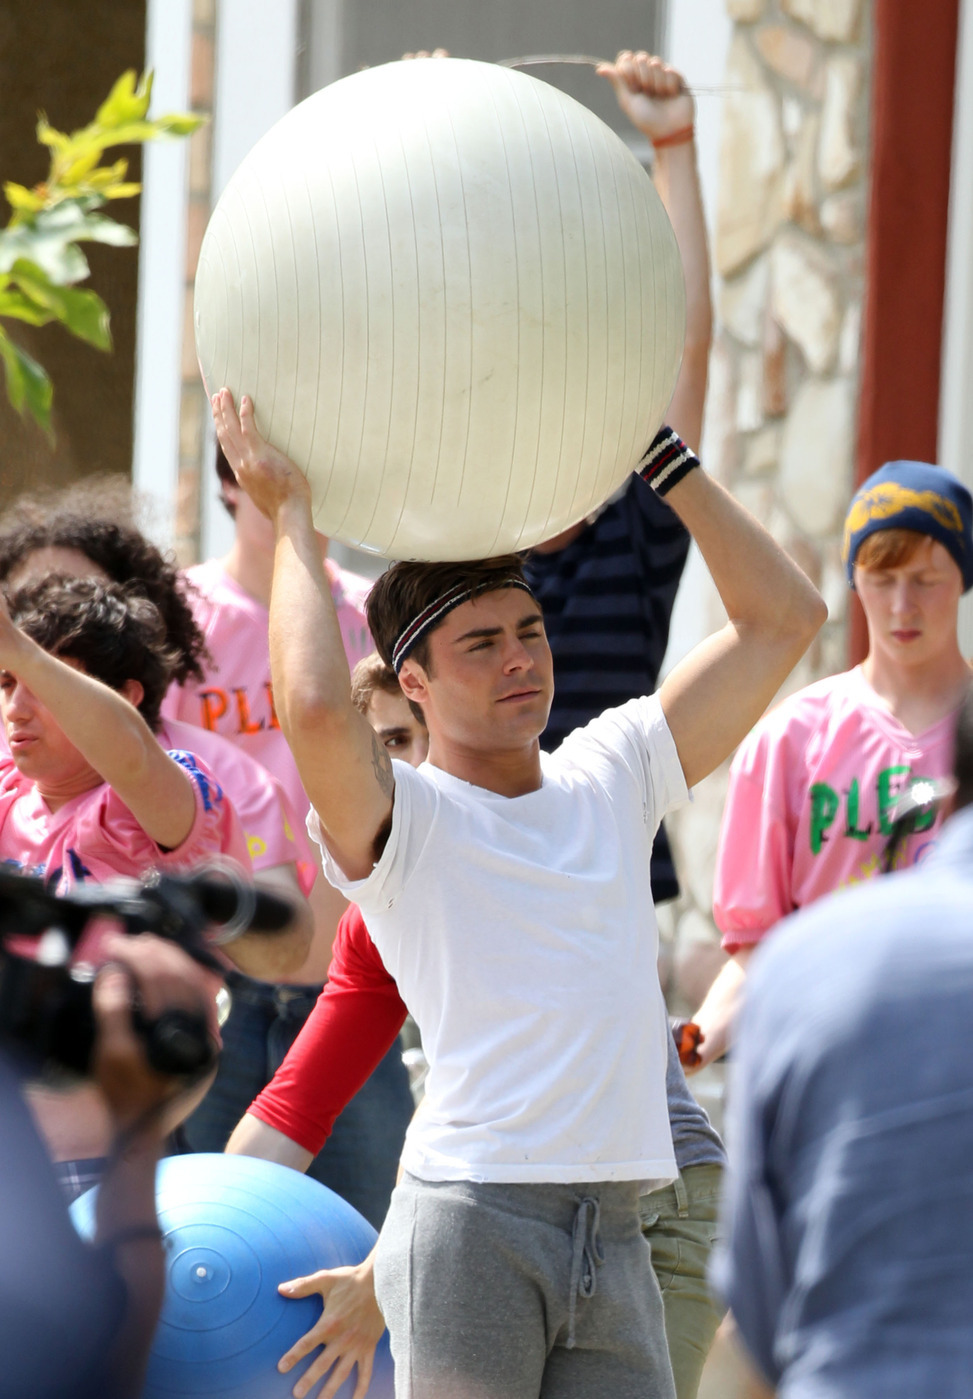 zac efron townies giant balls exercise sweatpants tight shirt dave franco